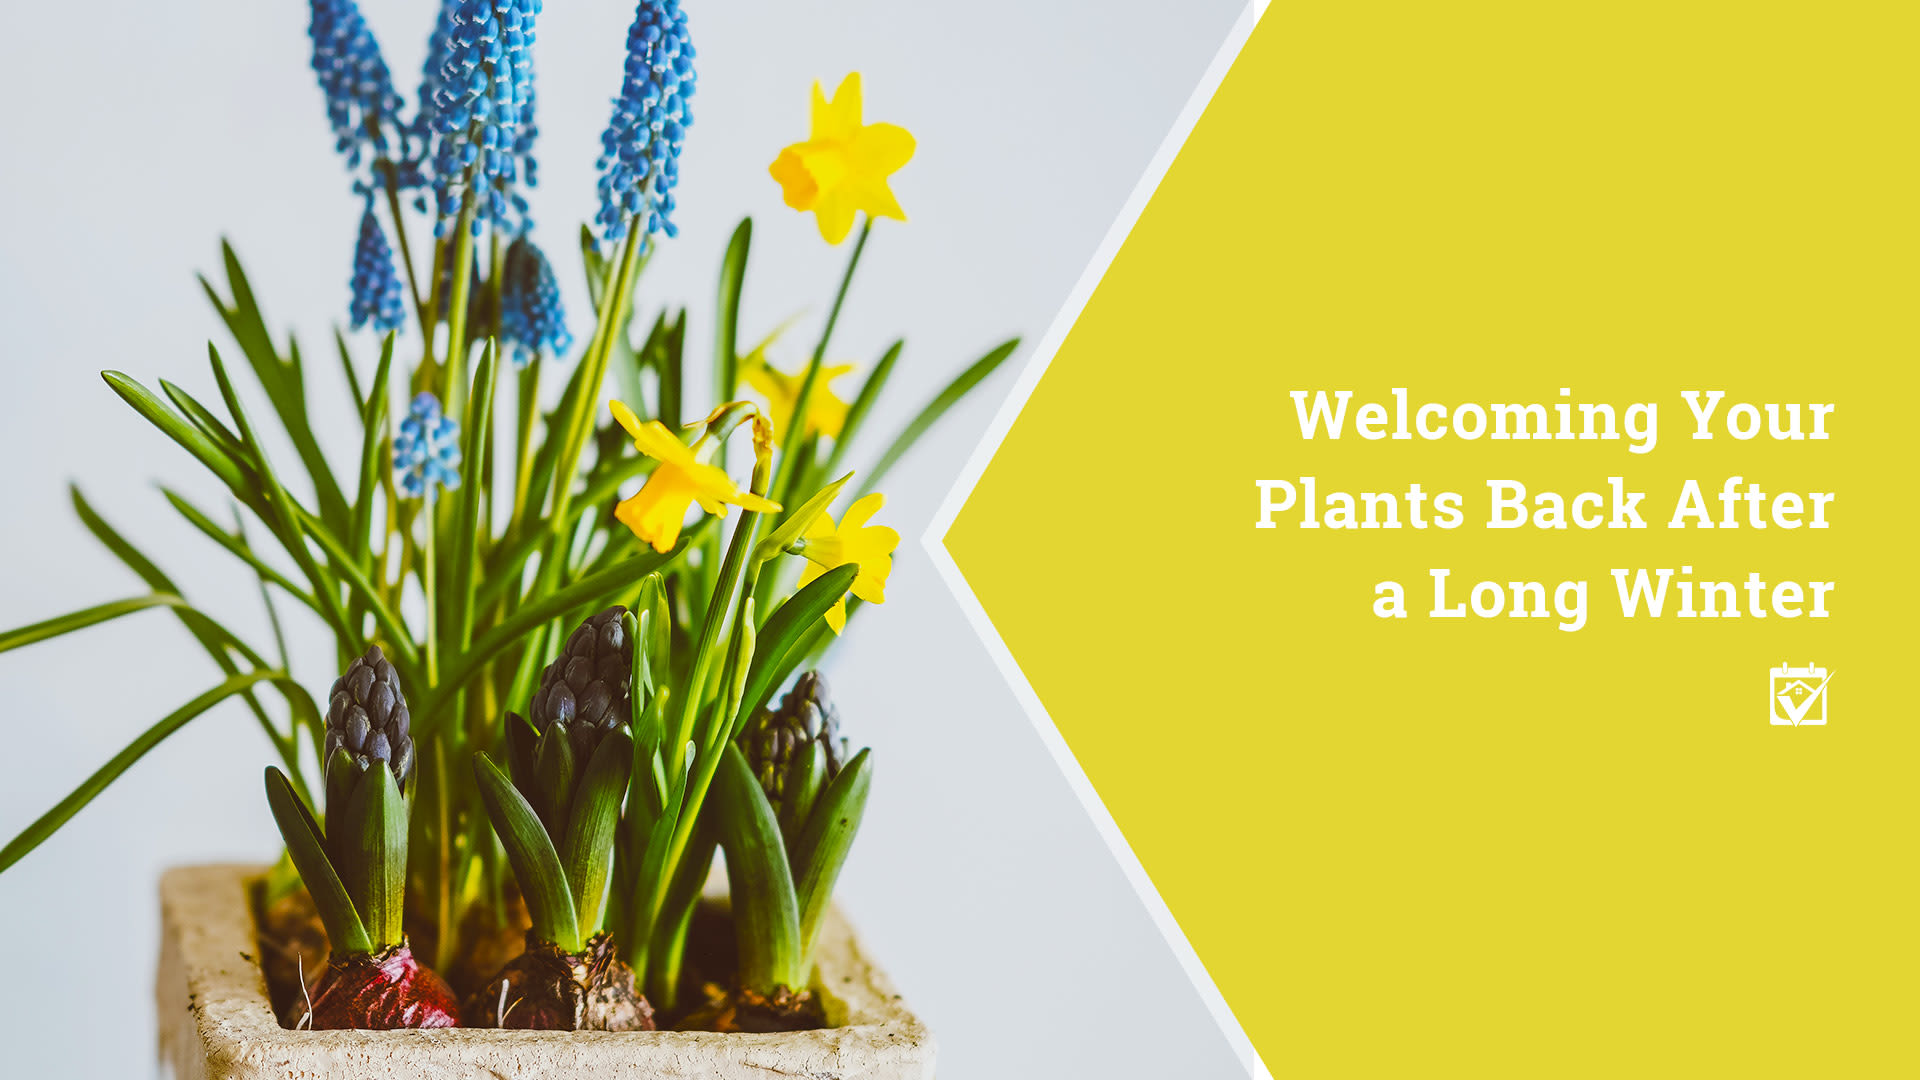 Welcoming Your Plants Back After a Long Winter